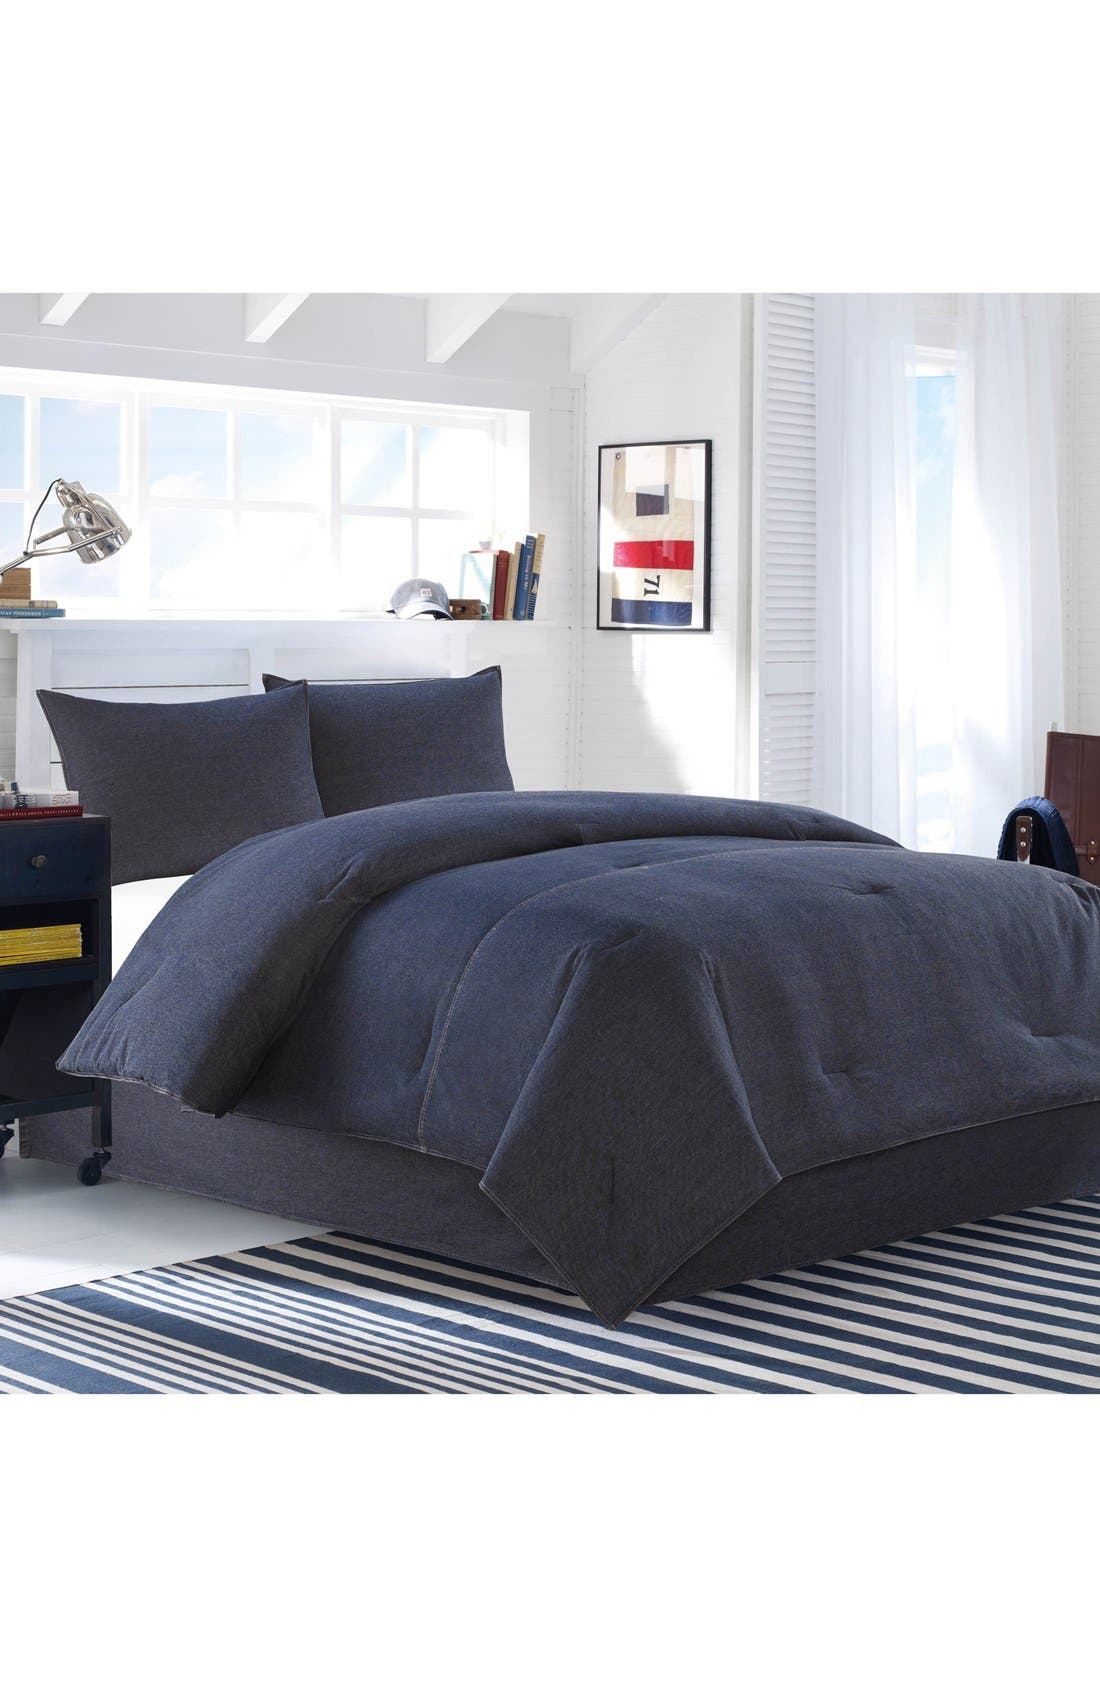 Alternate Image 1 Selected - Nautica Seaward Comforter & Sham Set